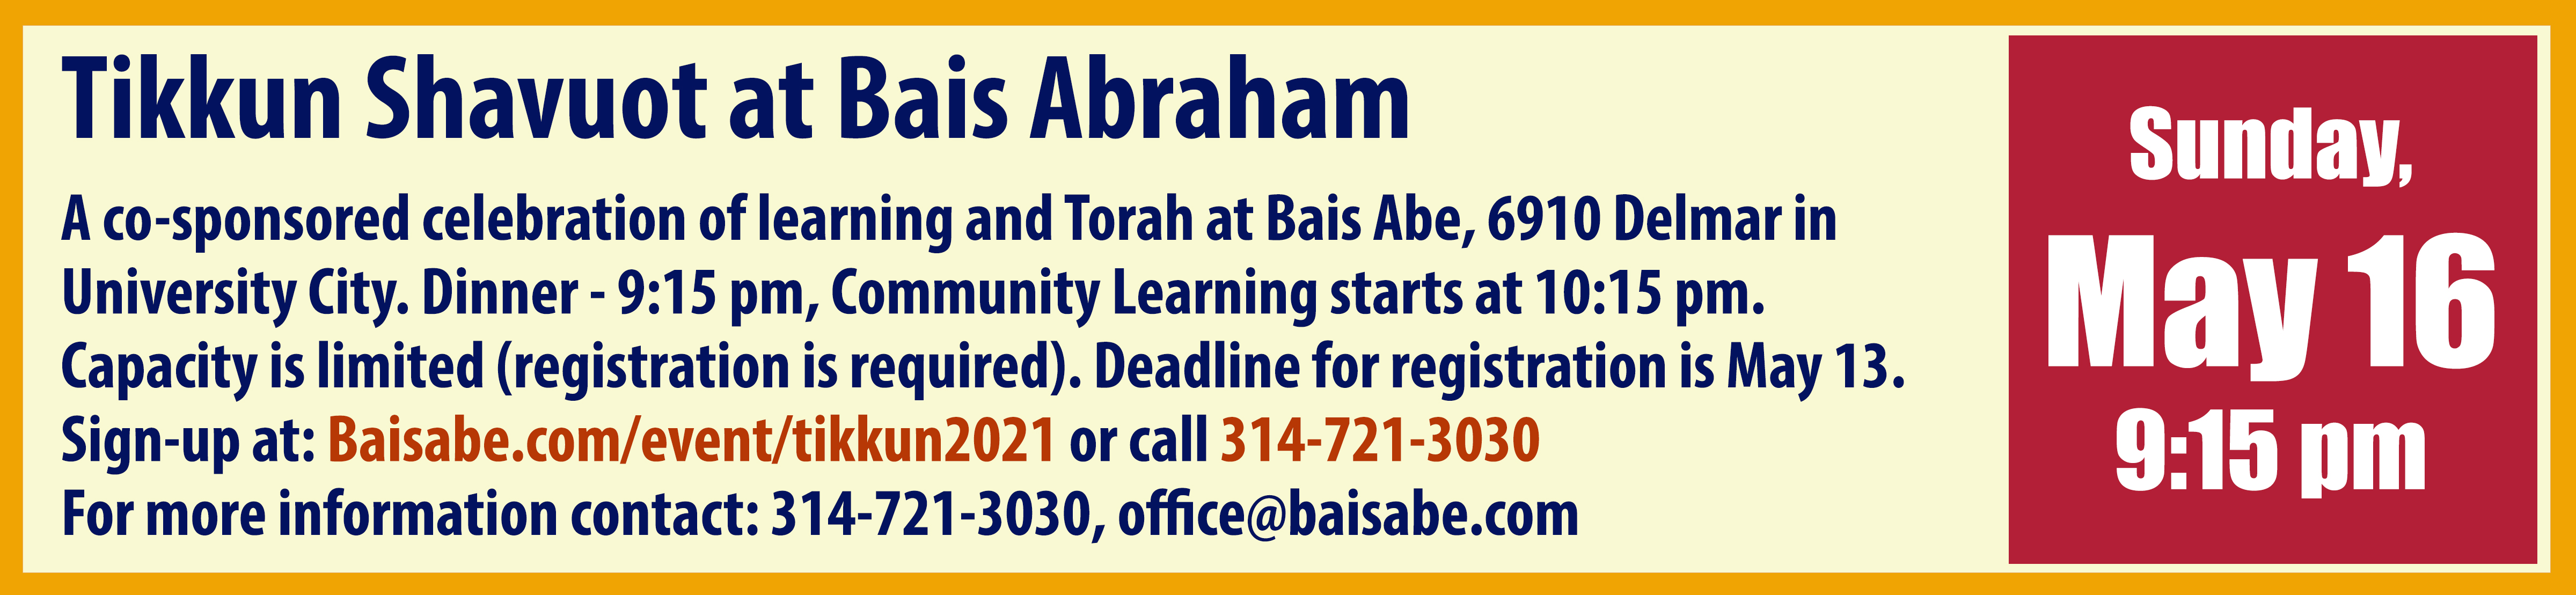 Tikkun Shavuot at Bais Abraham: A Celebration of Torah Learning